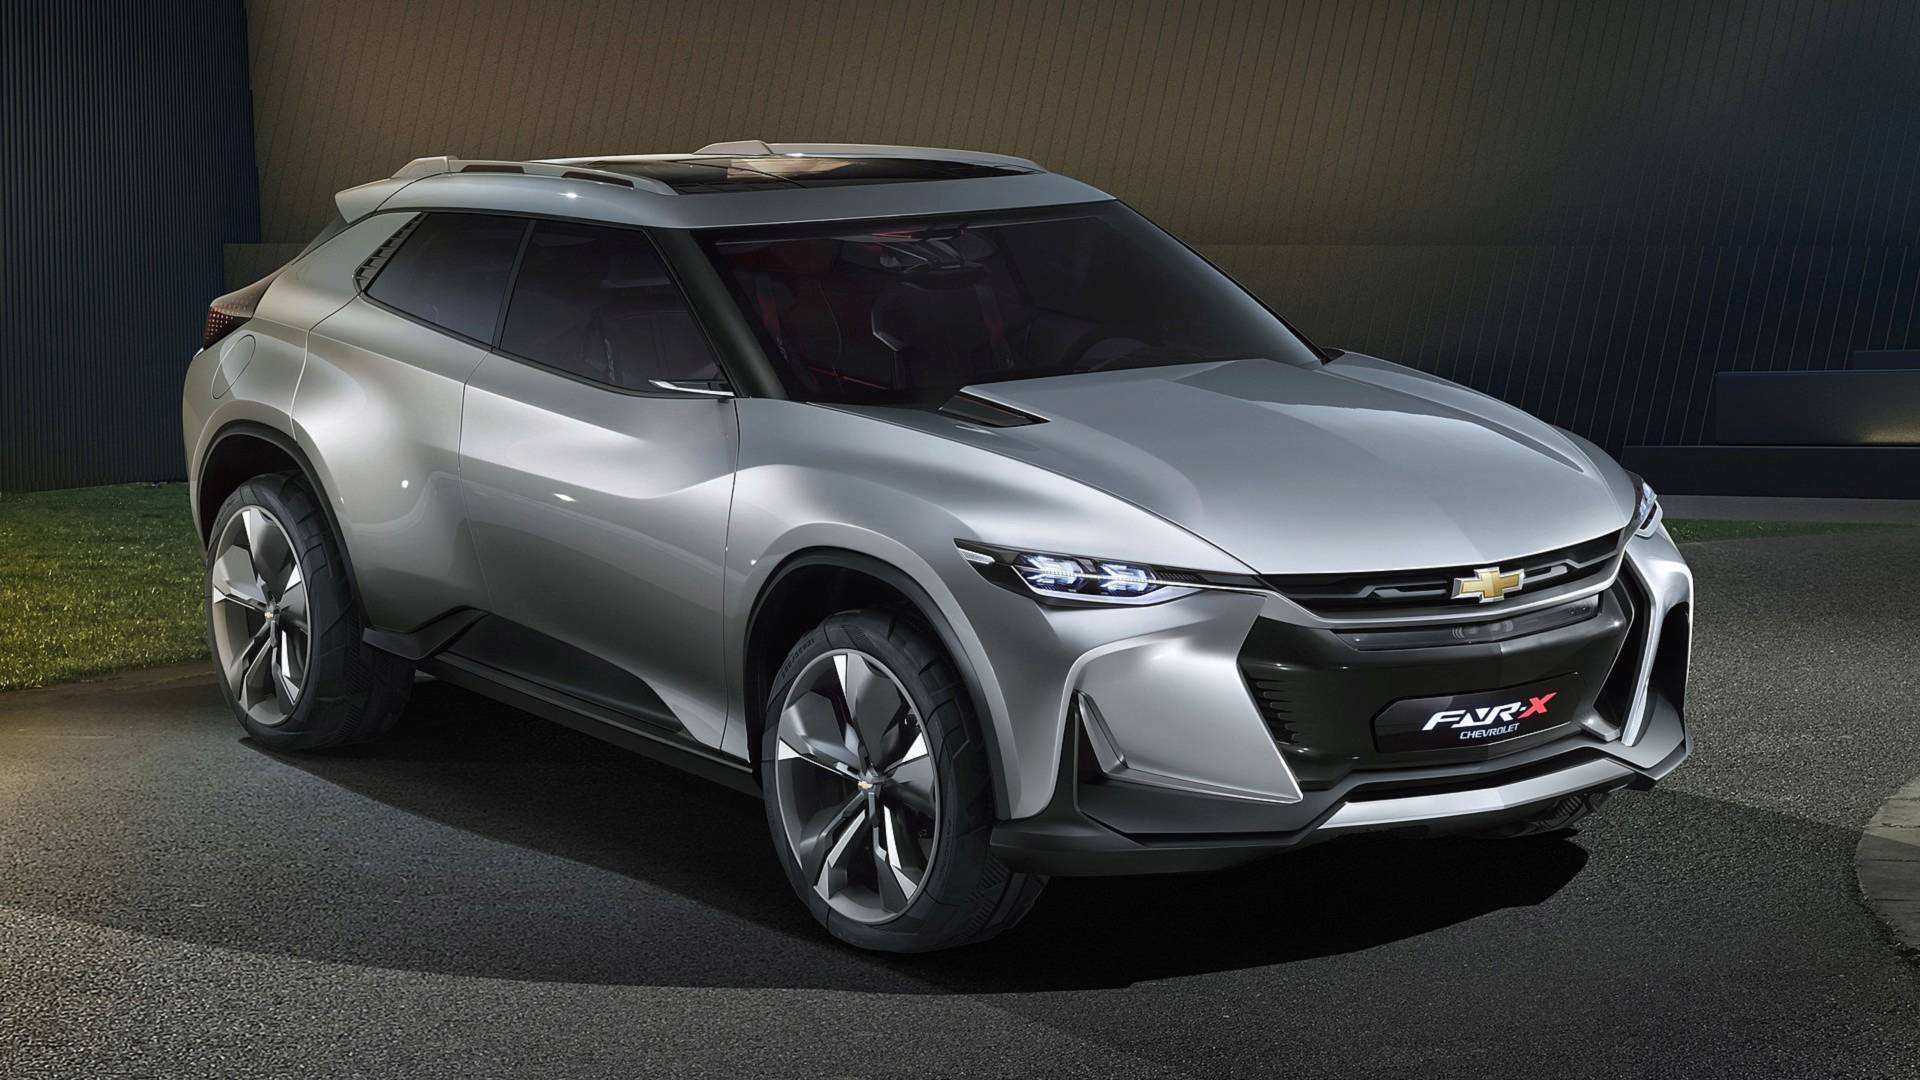 68 All New Chevrolet Cars For 2020 New Review